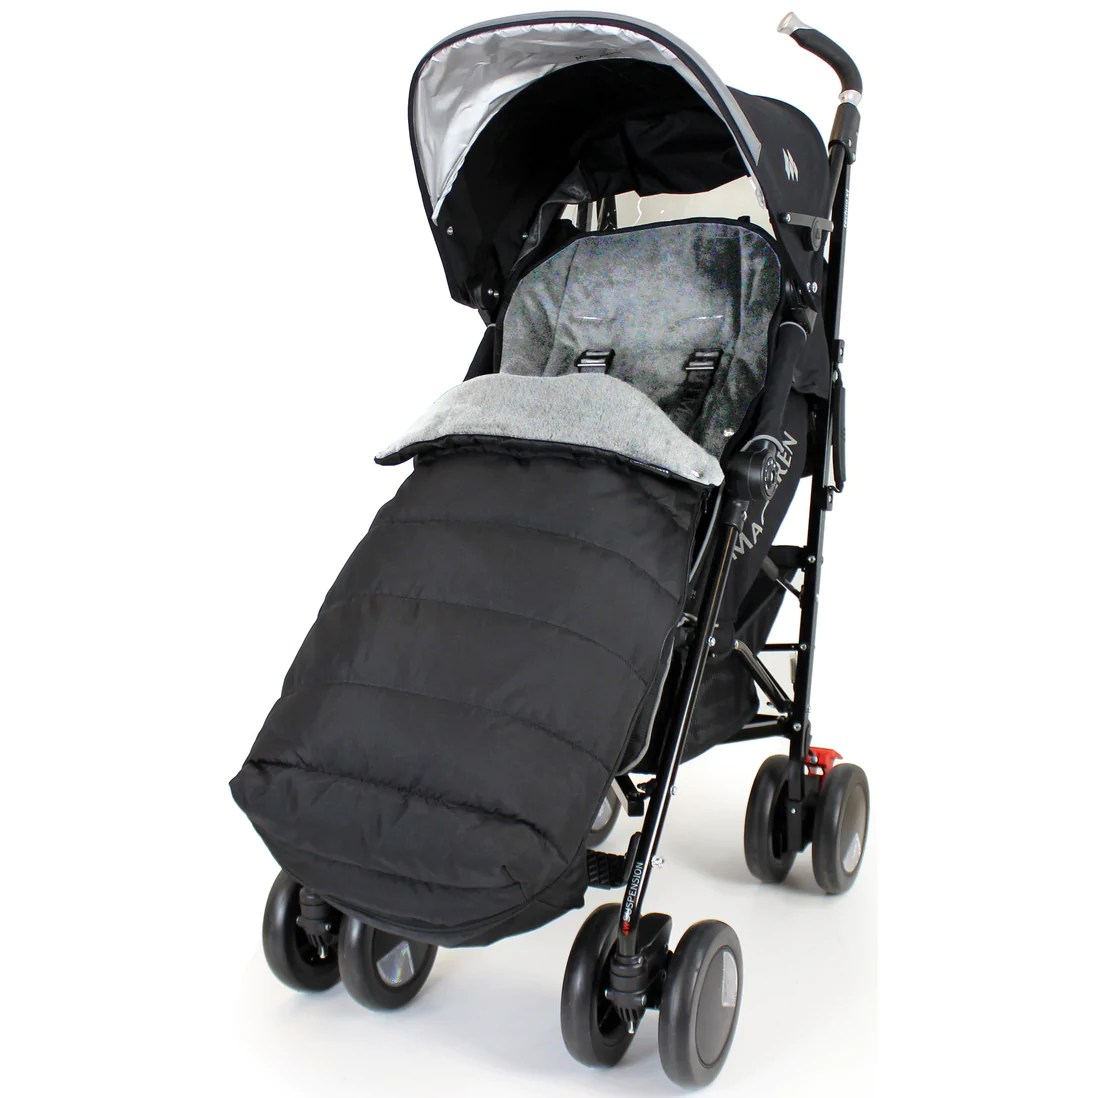 Maclaren Stroller Uk Reviews Xxl Large Luxury Foot Muff And Liner For Maclaren Techno Xt Black Grey